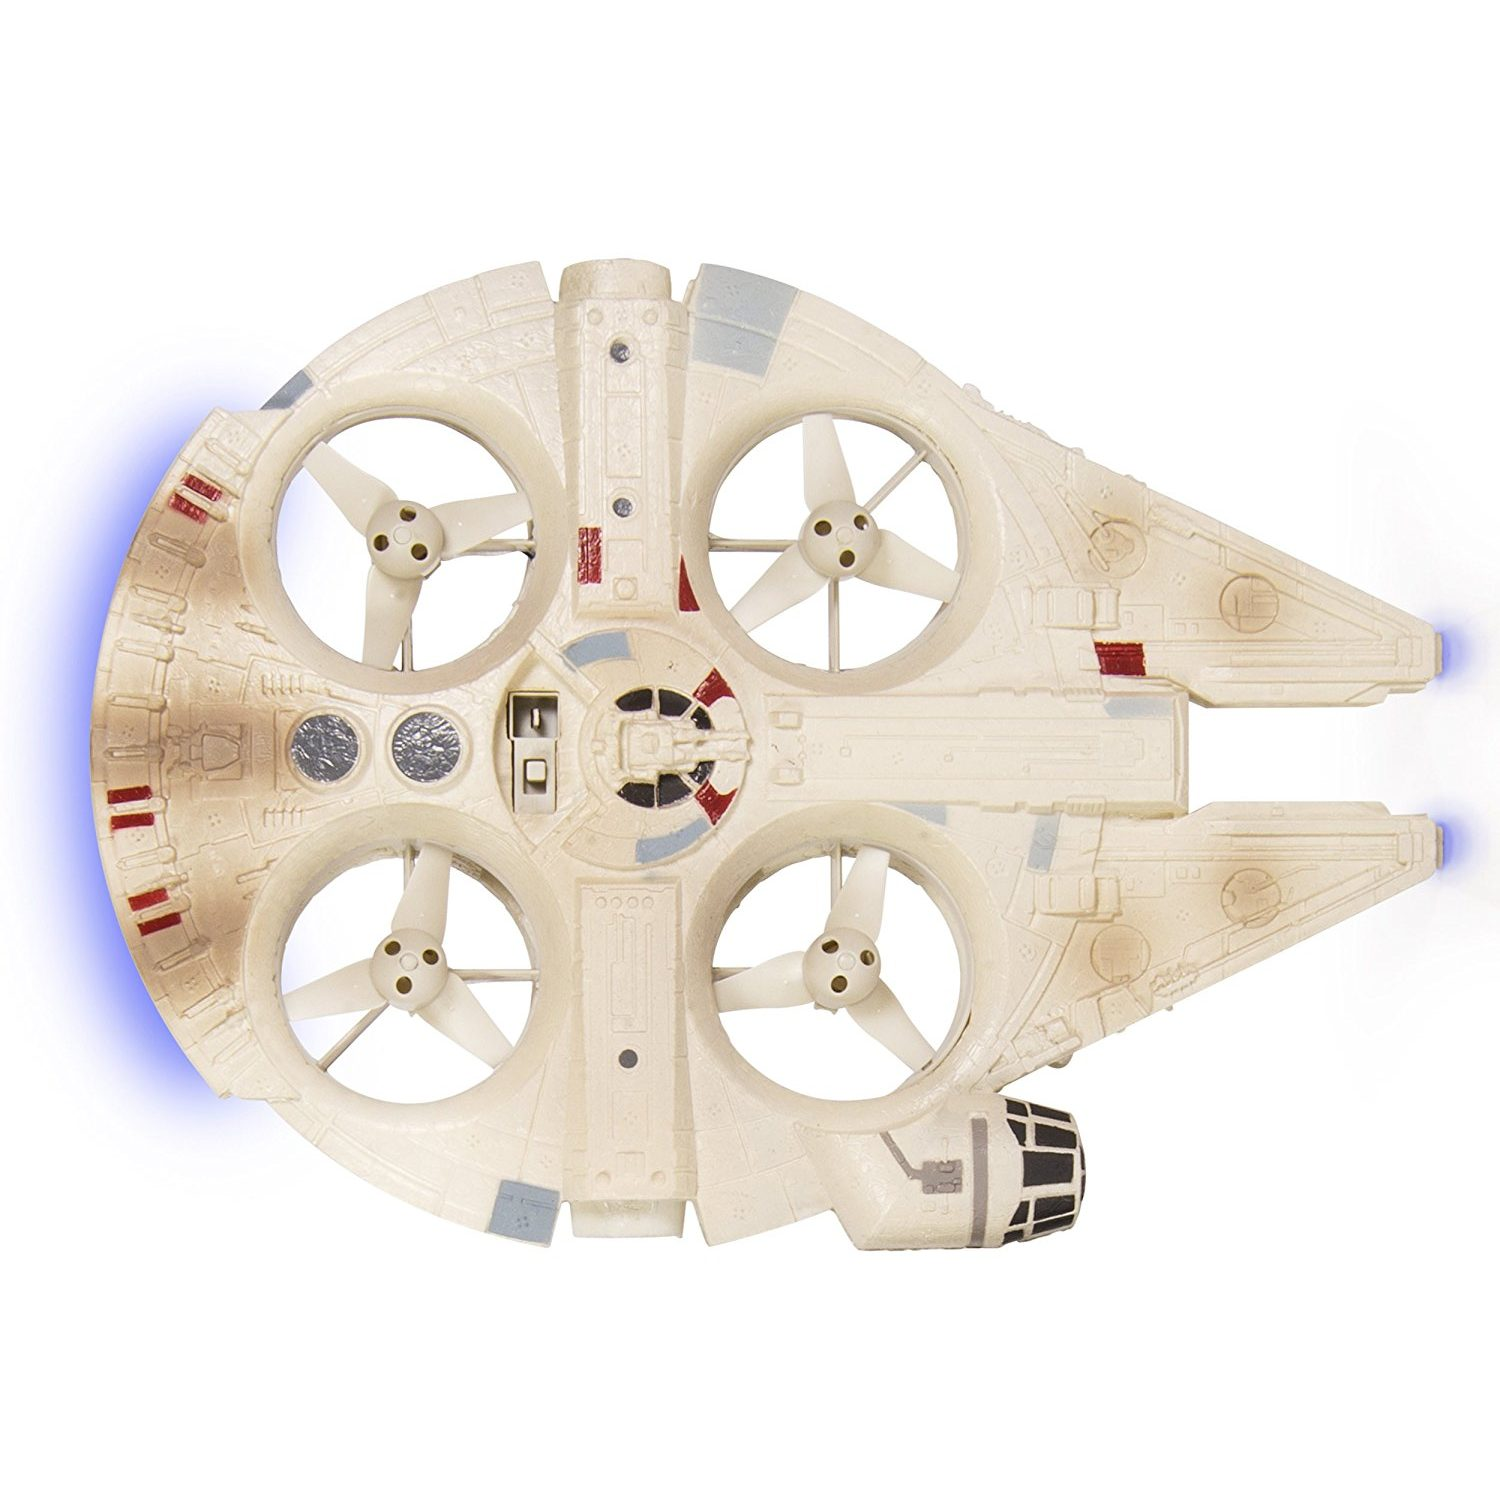 Star Wars Millennium Falcon toy (RTF drone) - photo from above